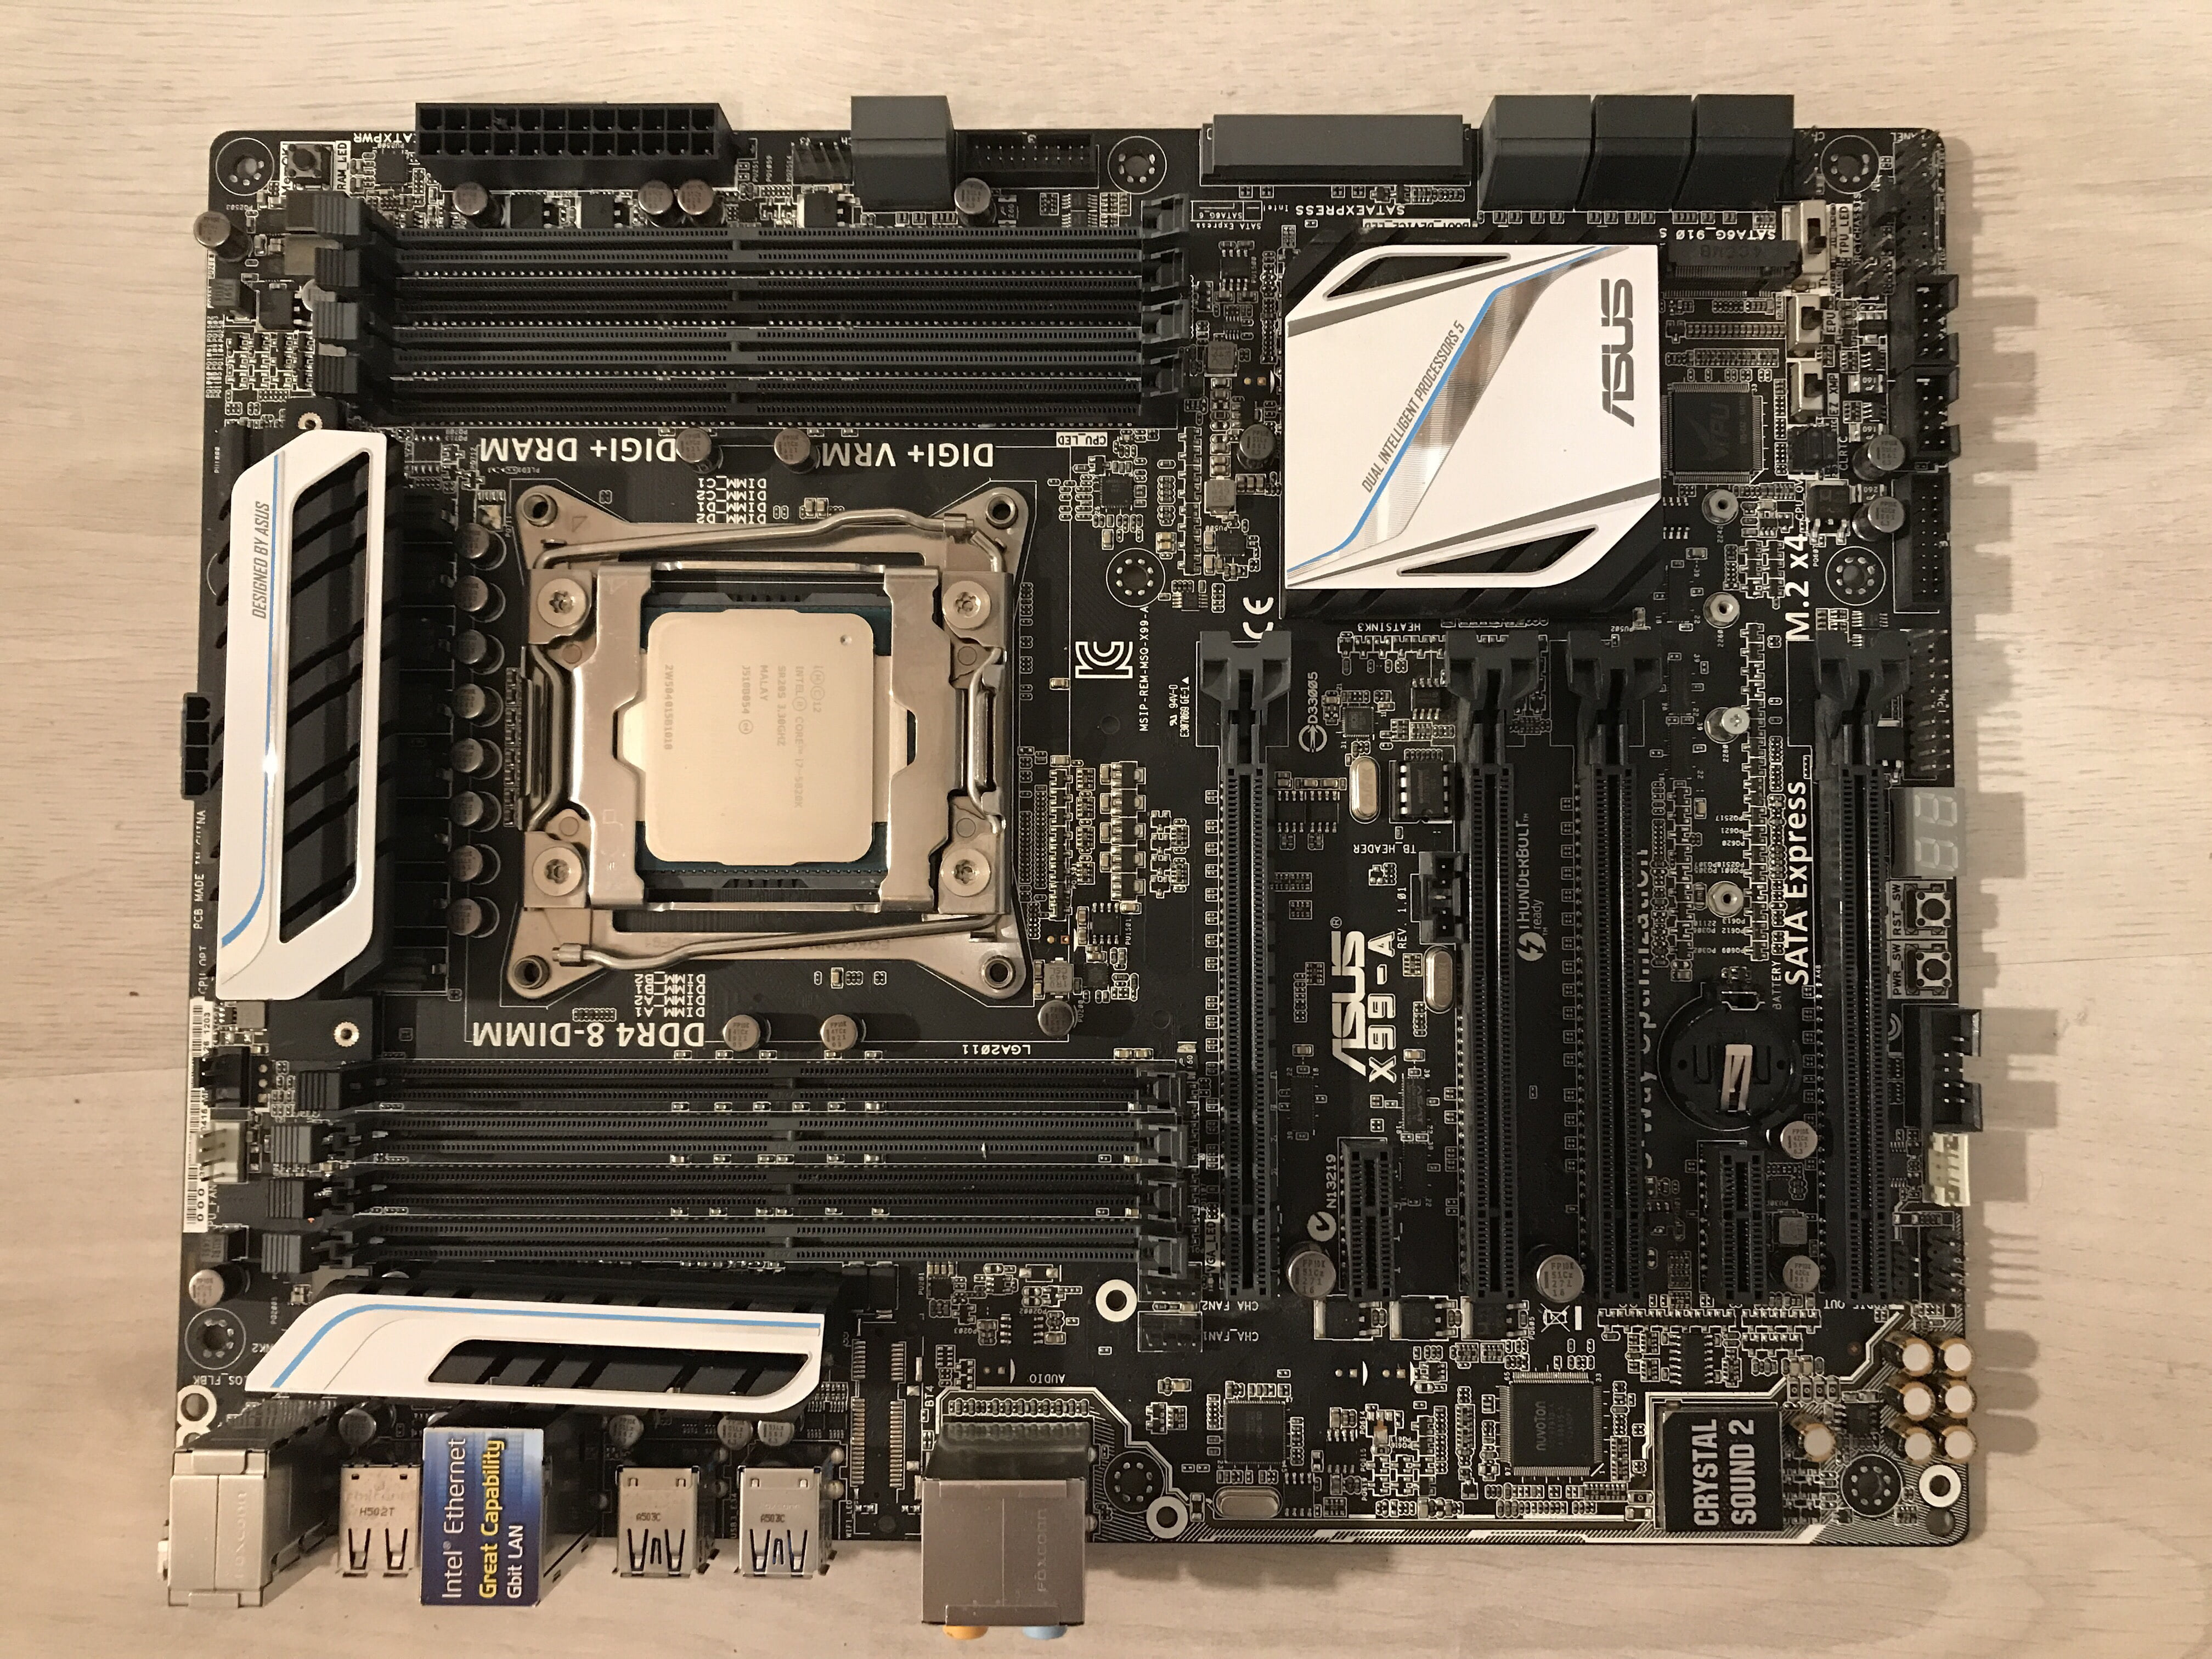 Placa de baza din componenta unei unitate PC de gaming